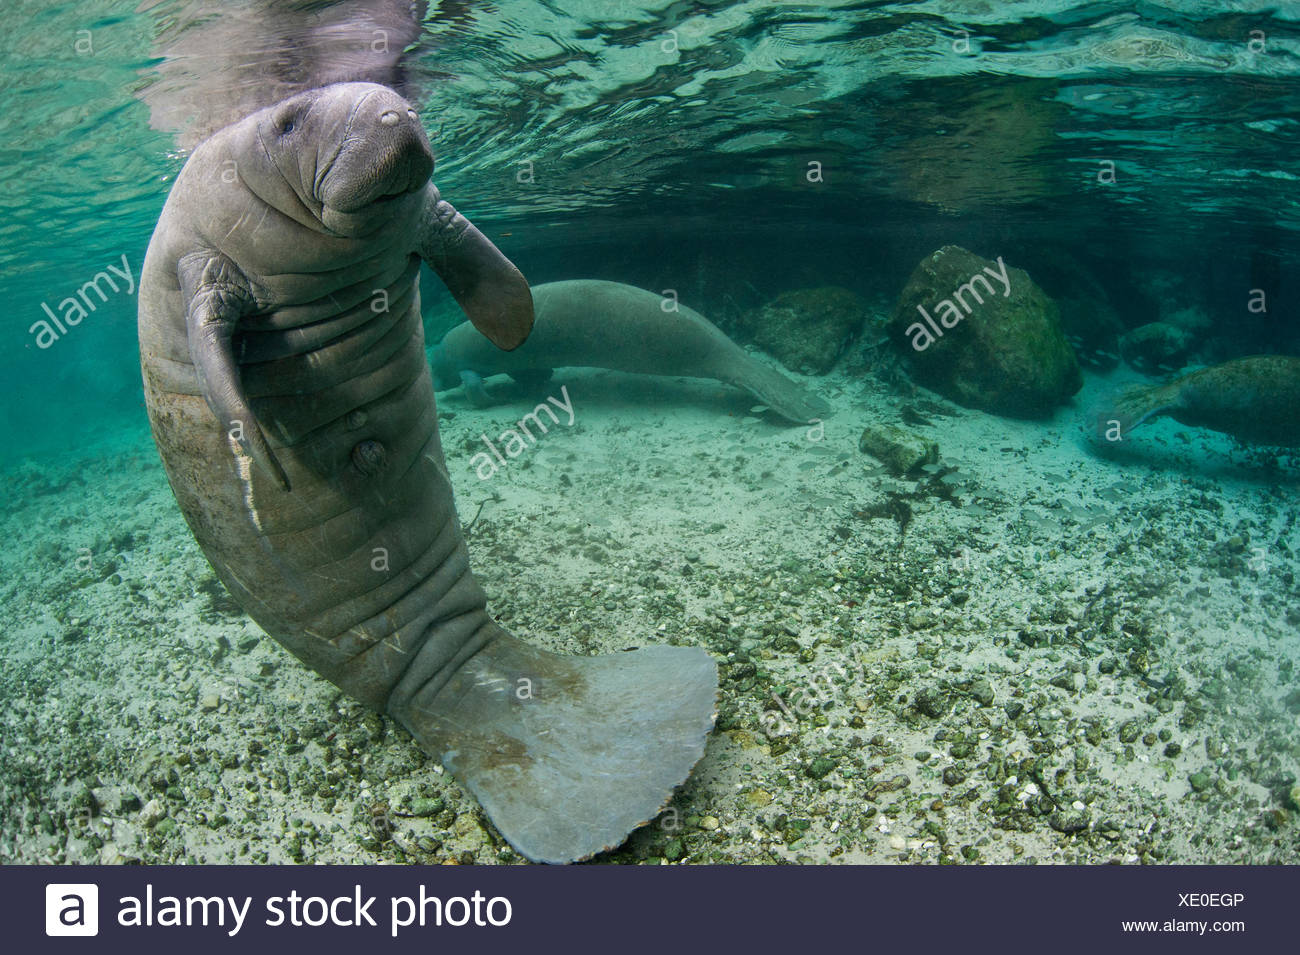 A Florida manatee (Trichechus manatus latirostrus) in upright posture with tail on river bed, outside Three Sisters Spring. Crystal River, Florida, USA. - Stock Image